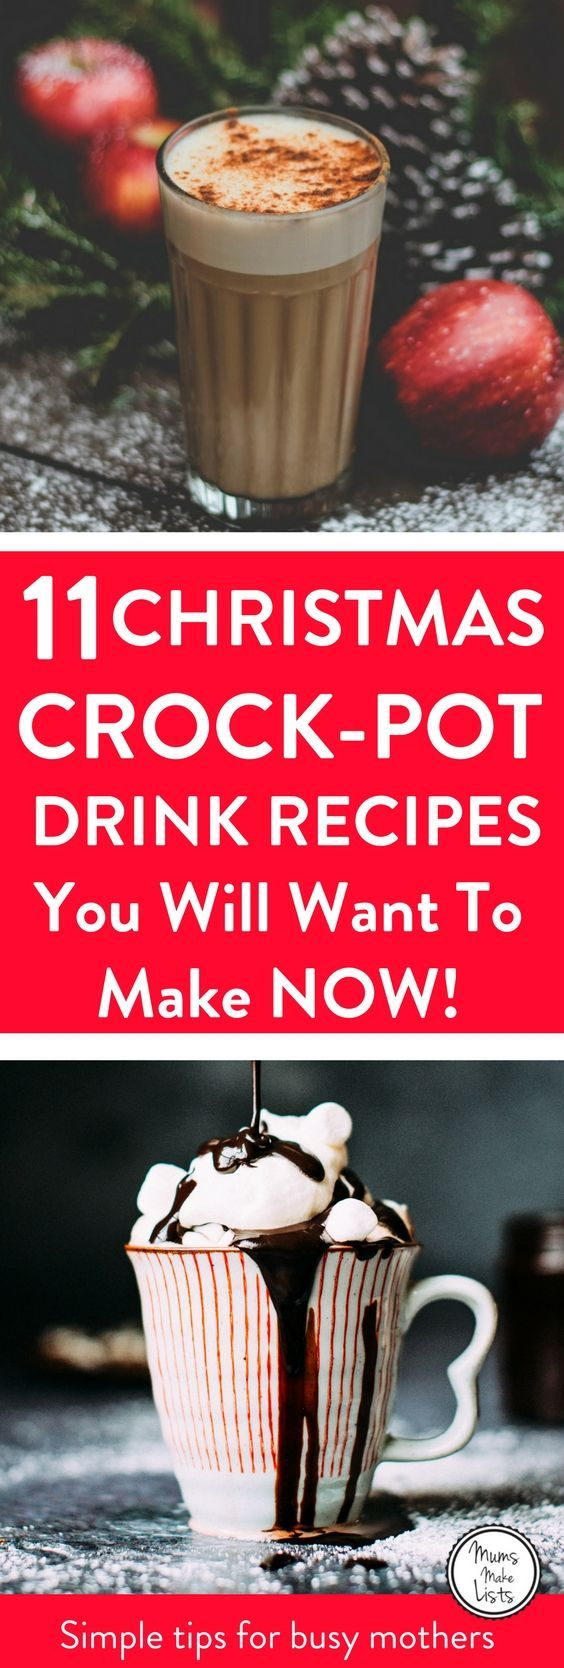 Christmas Crock-Pot slower cooker drinks are an easy way to create an amazing hot alcoholic or warming hot chocolate drink for your guests during the holiday period. You just pop the ingredients in the Crock-pot and leave the pot to do the work, whilst yo